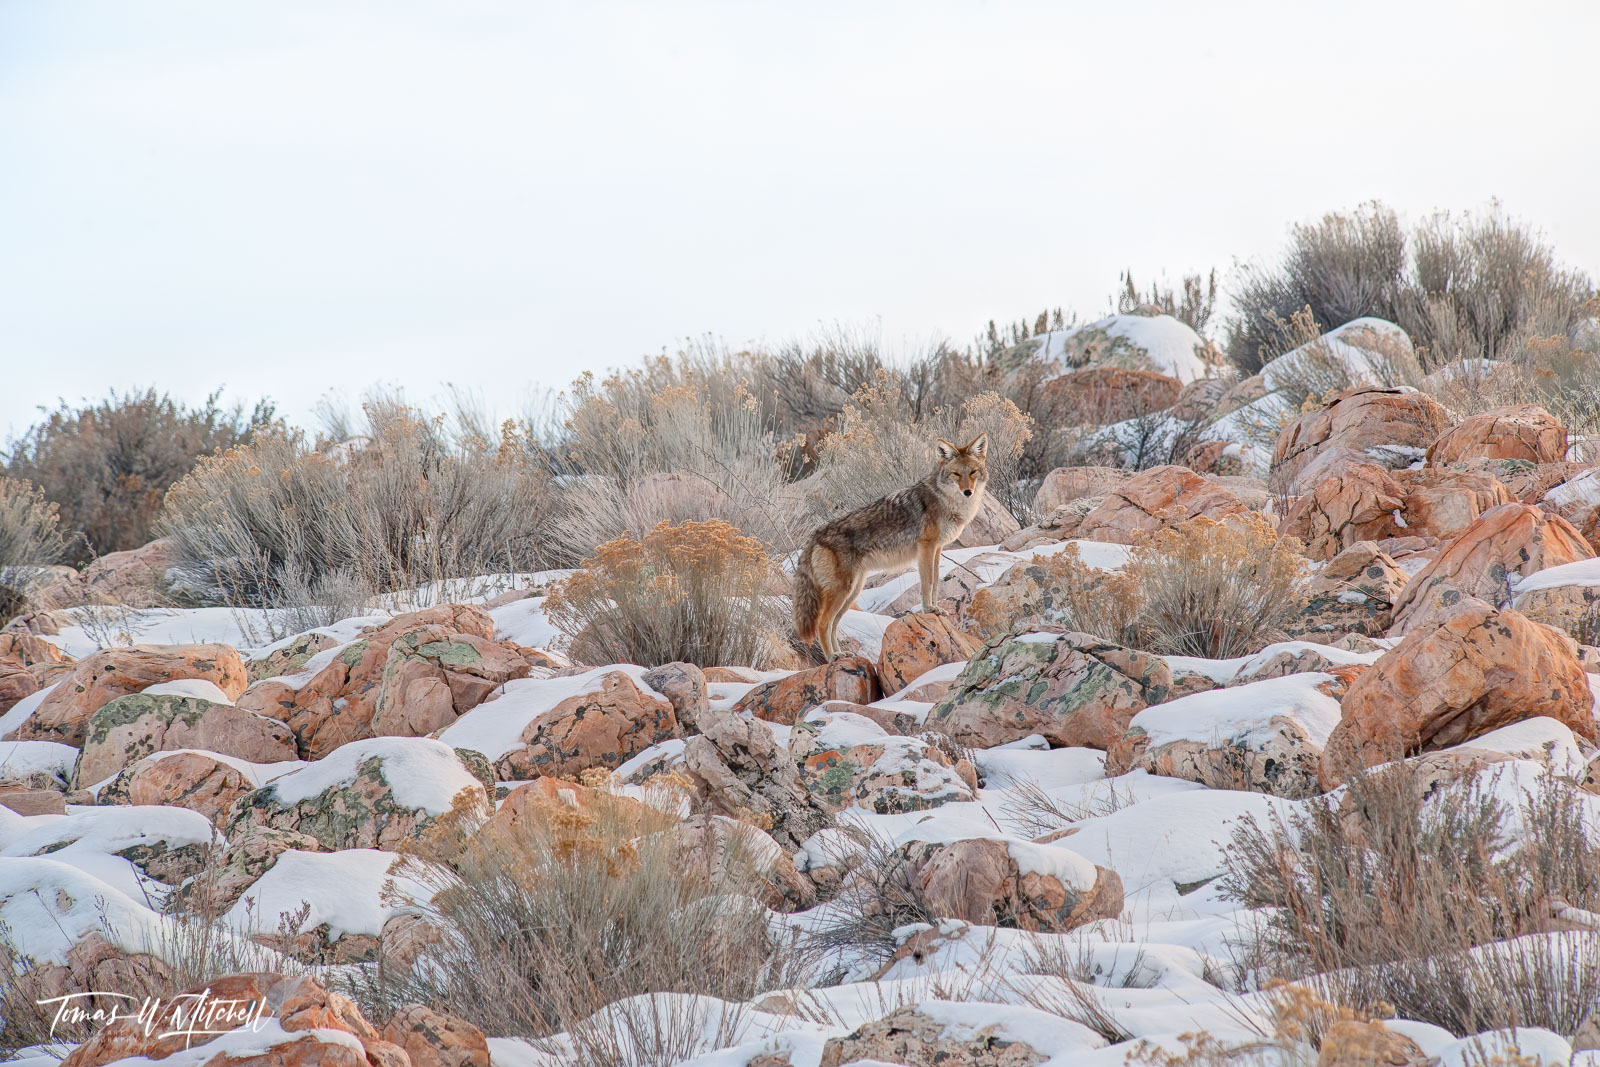 limited edition, fine art, prints, antelope island, utah, coyote, animals, winter, rocks, muted colors, snow, photograph, wildlife, , photo